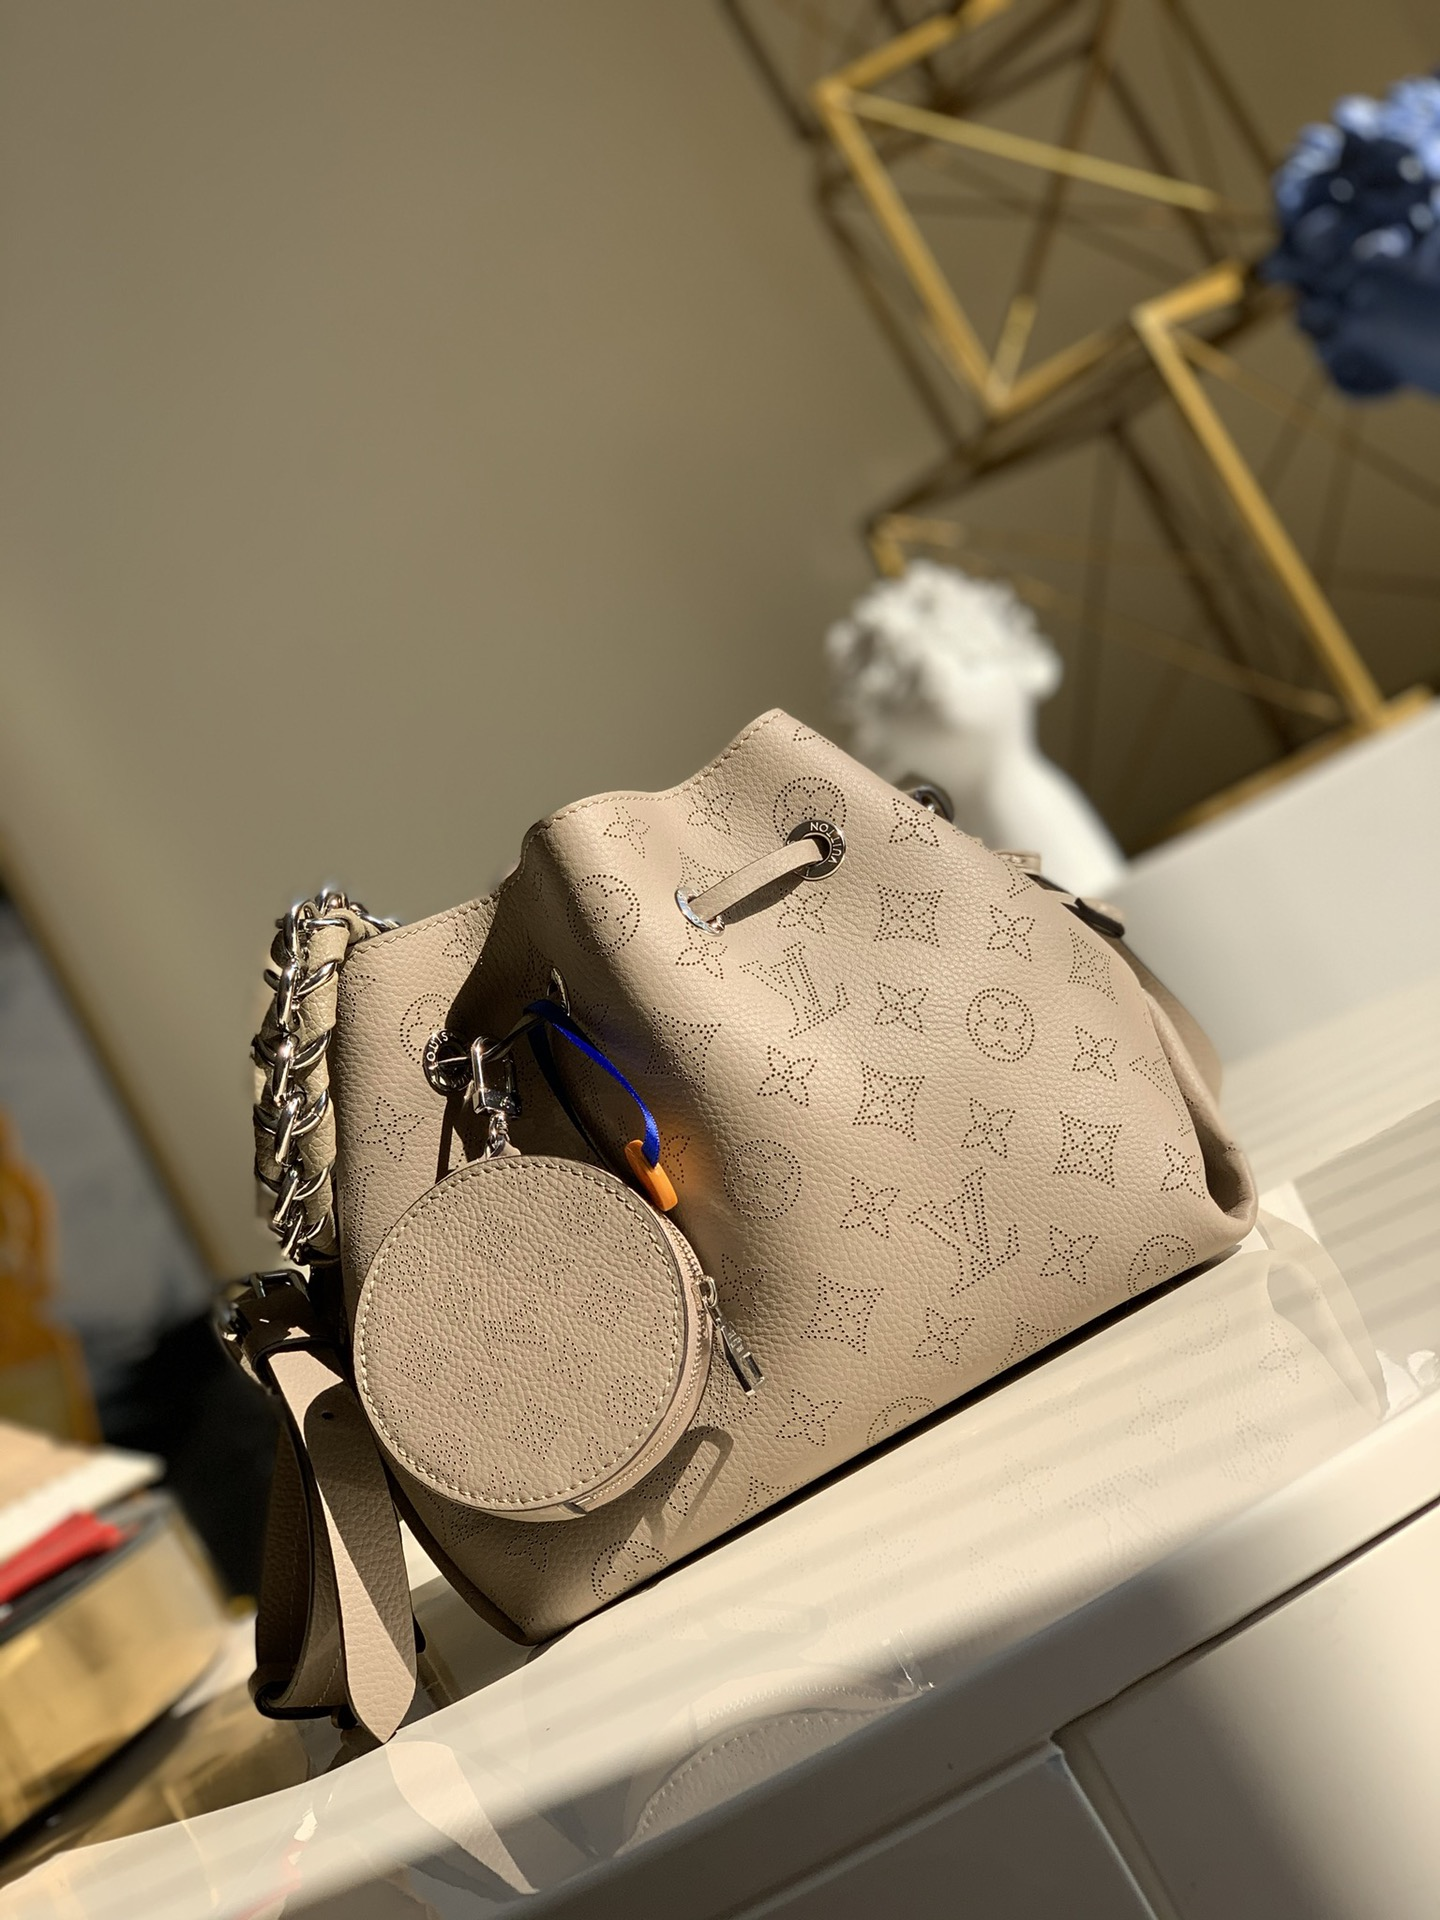 Replica Louis Vuitton M57201 Bella Bucket Bag in Mahina Calf Leather wite Perforated Monogram Pattern Galet